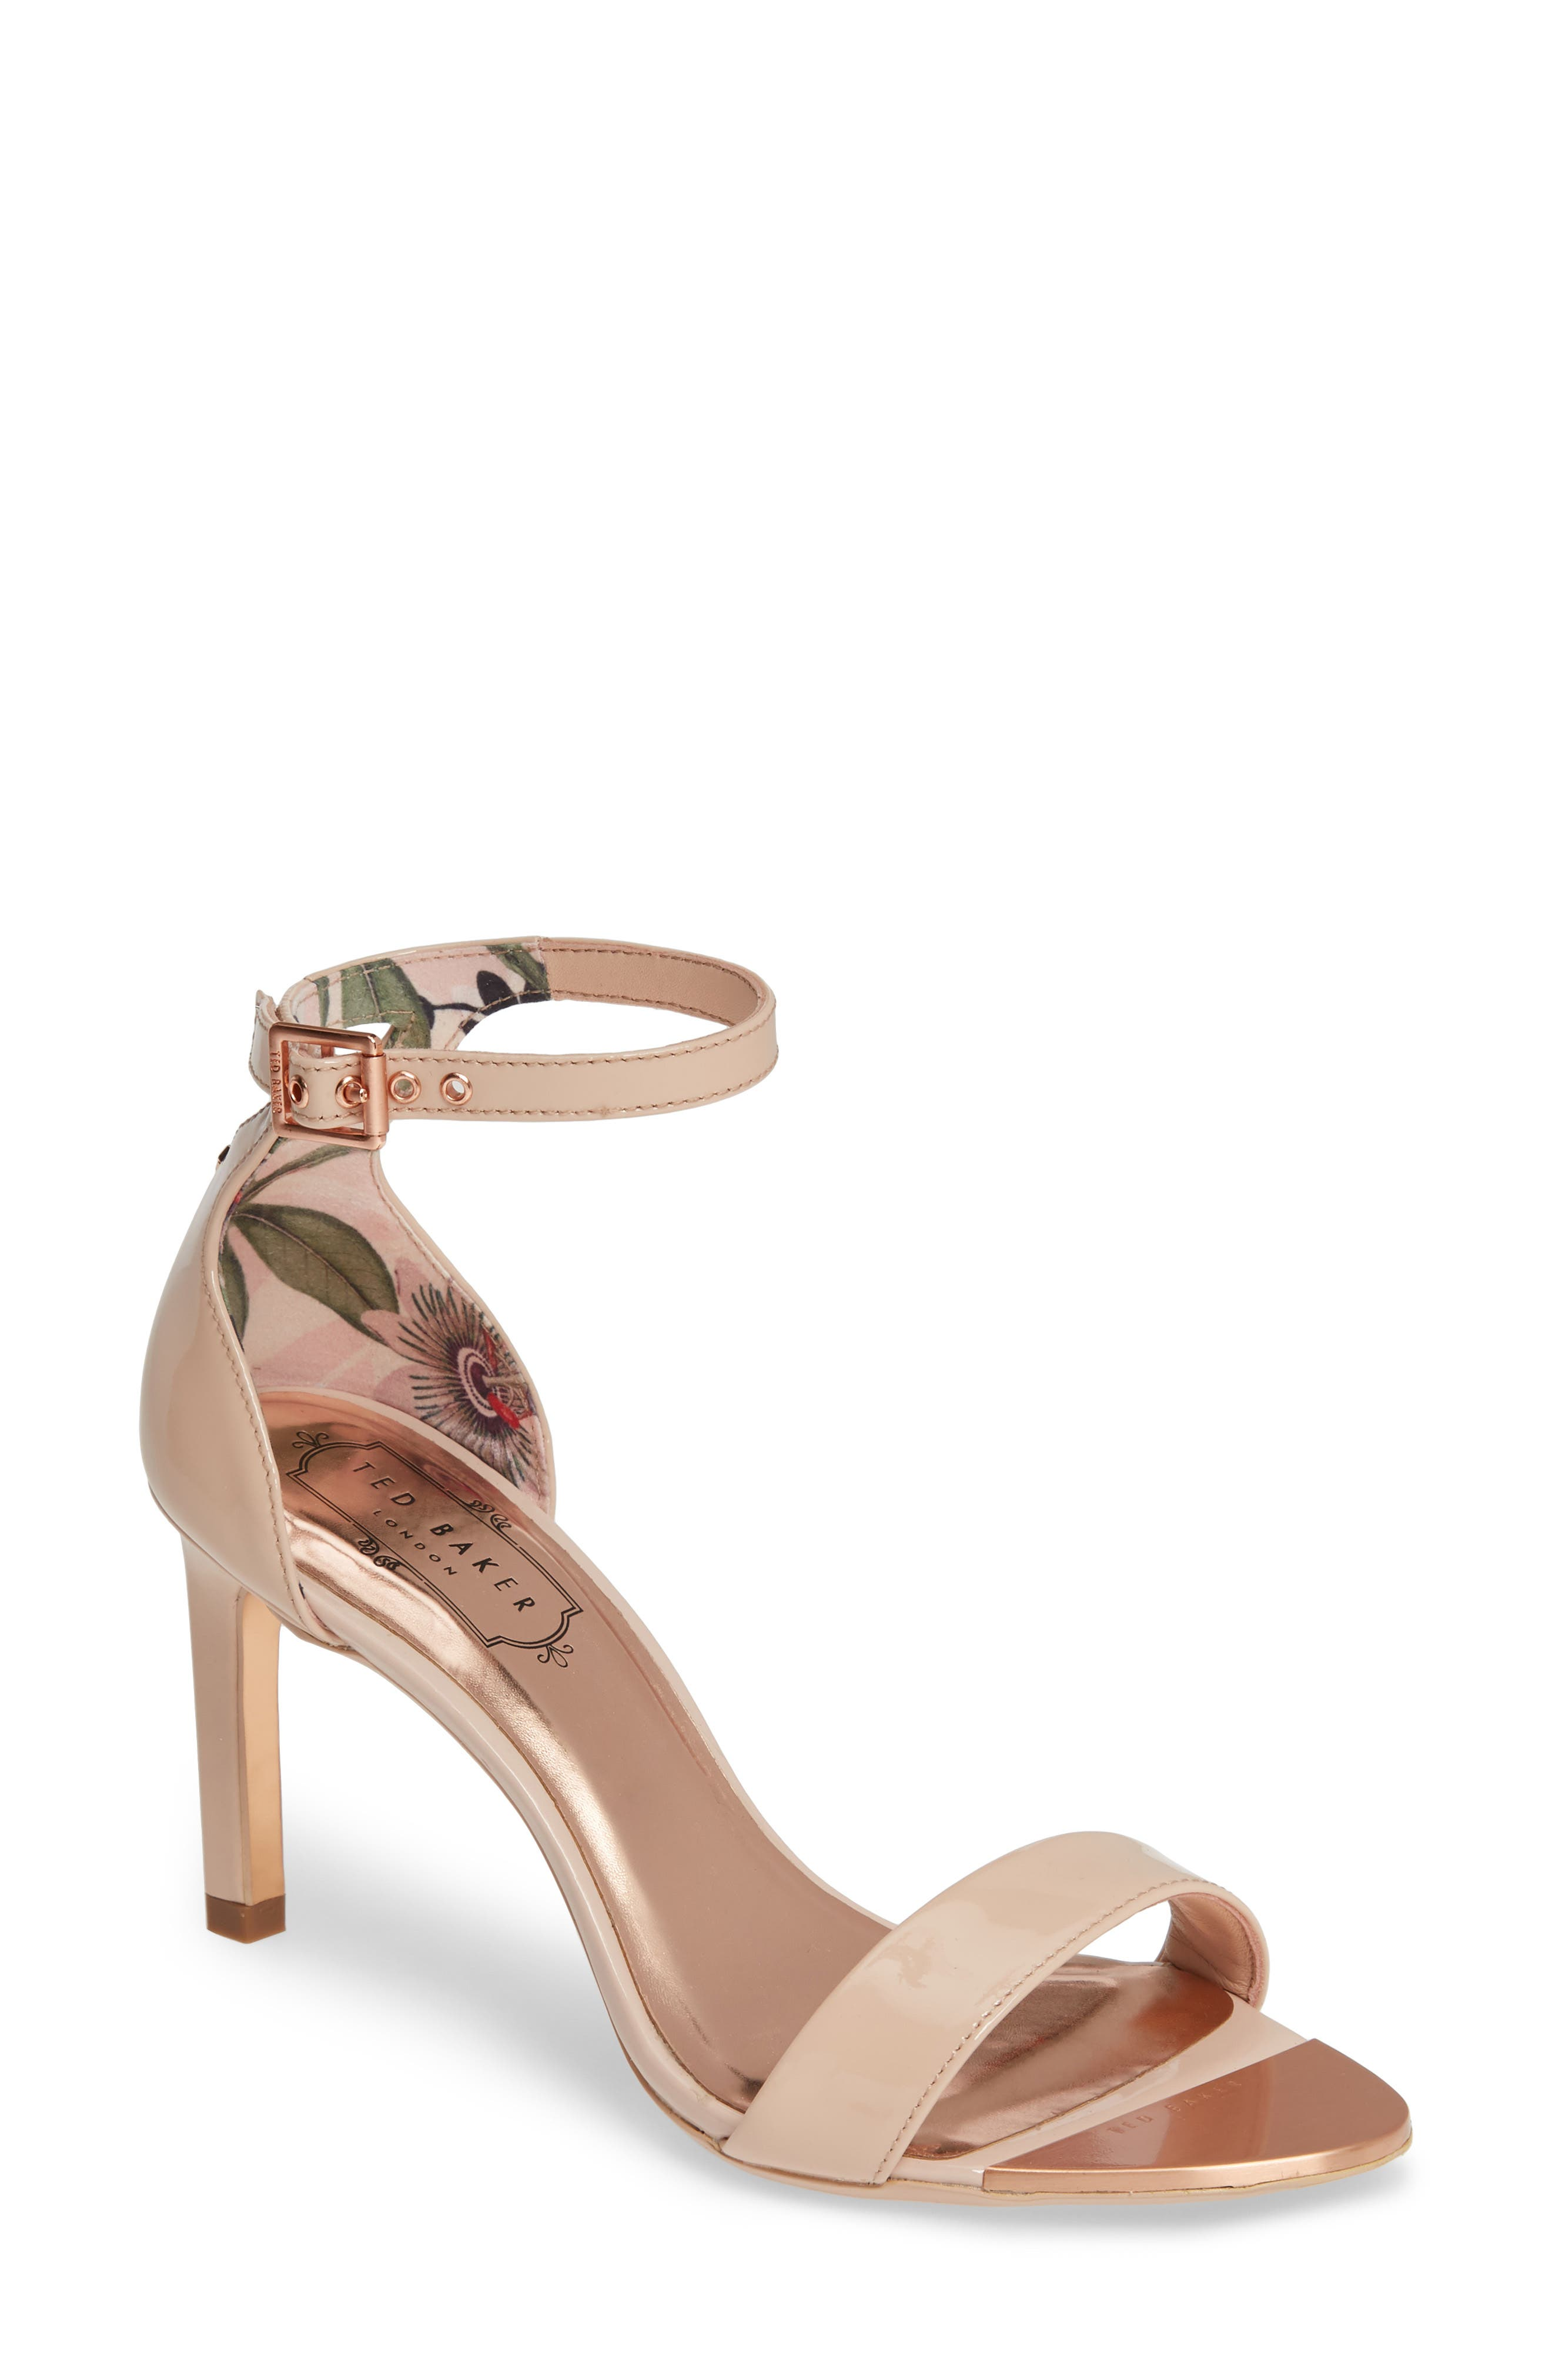 516f86e32df67f Ted Baker London Ankle Strap Sandal- Beige